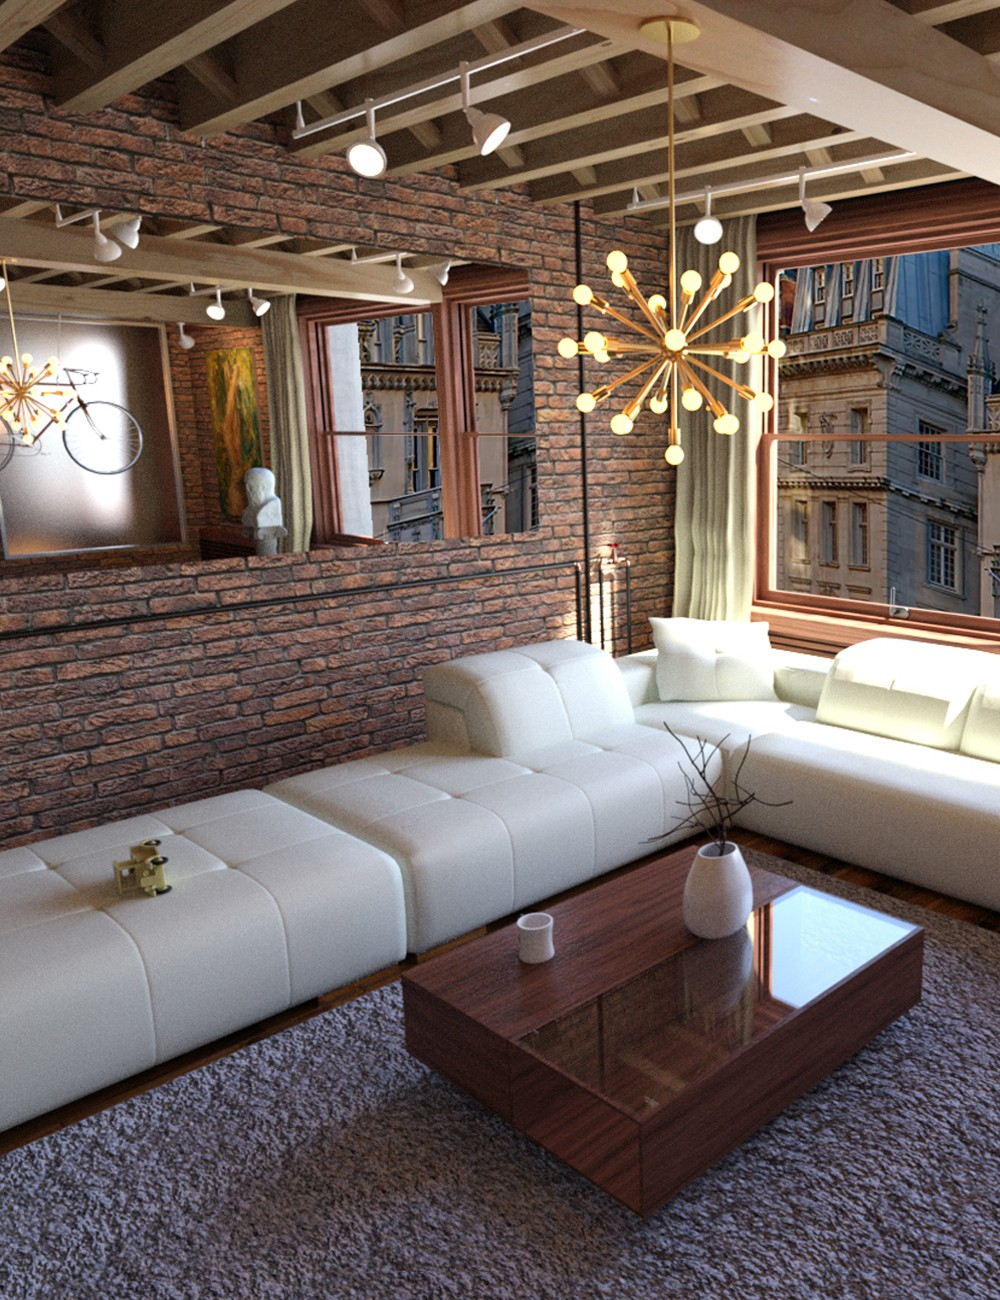 download daz studio 3 for free daz 3d ny living room On living room ny